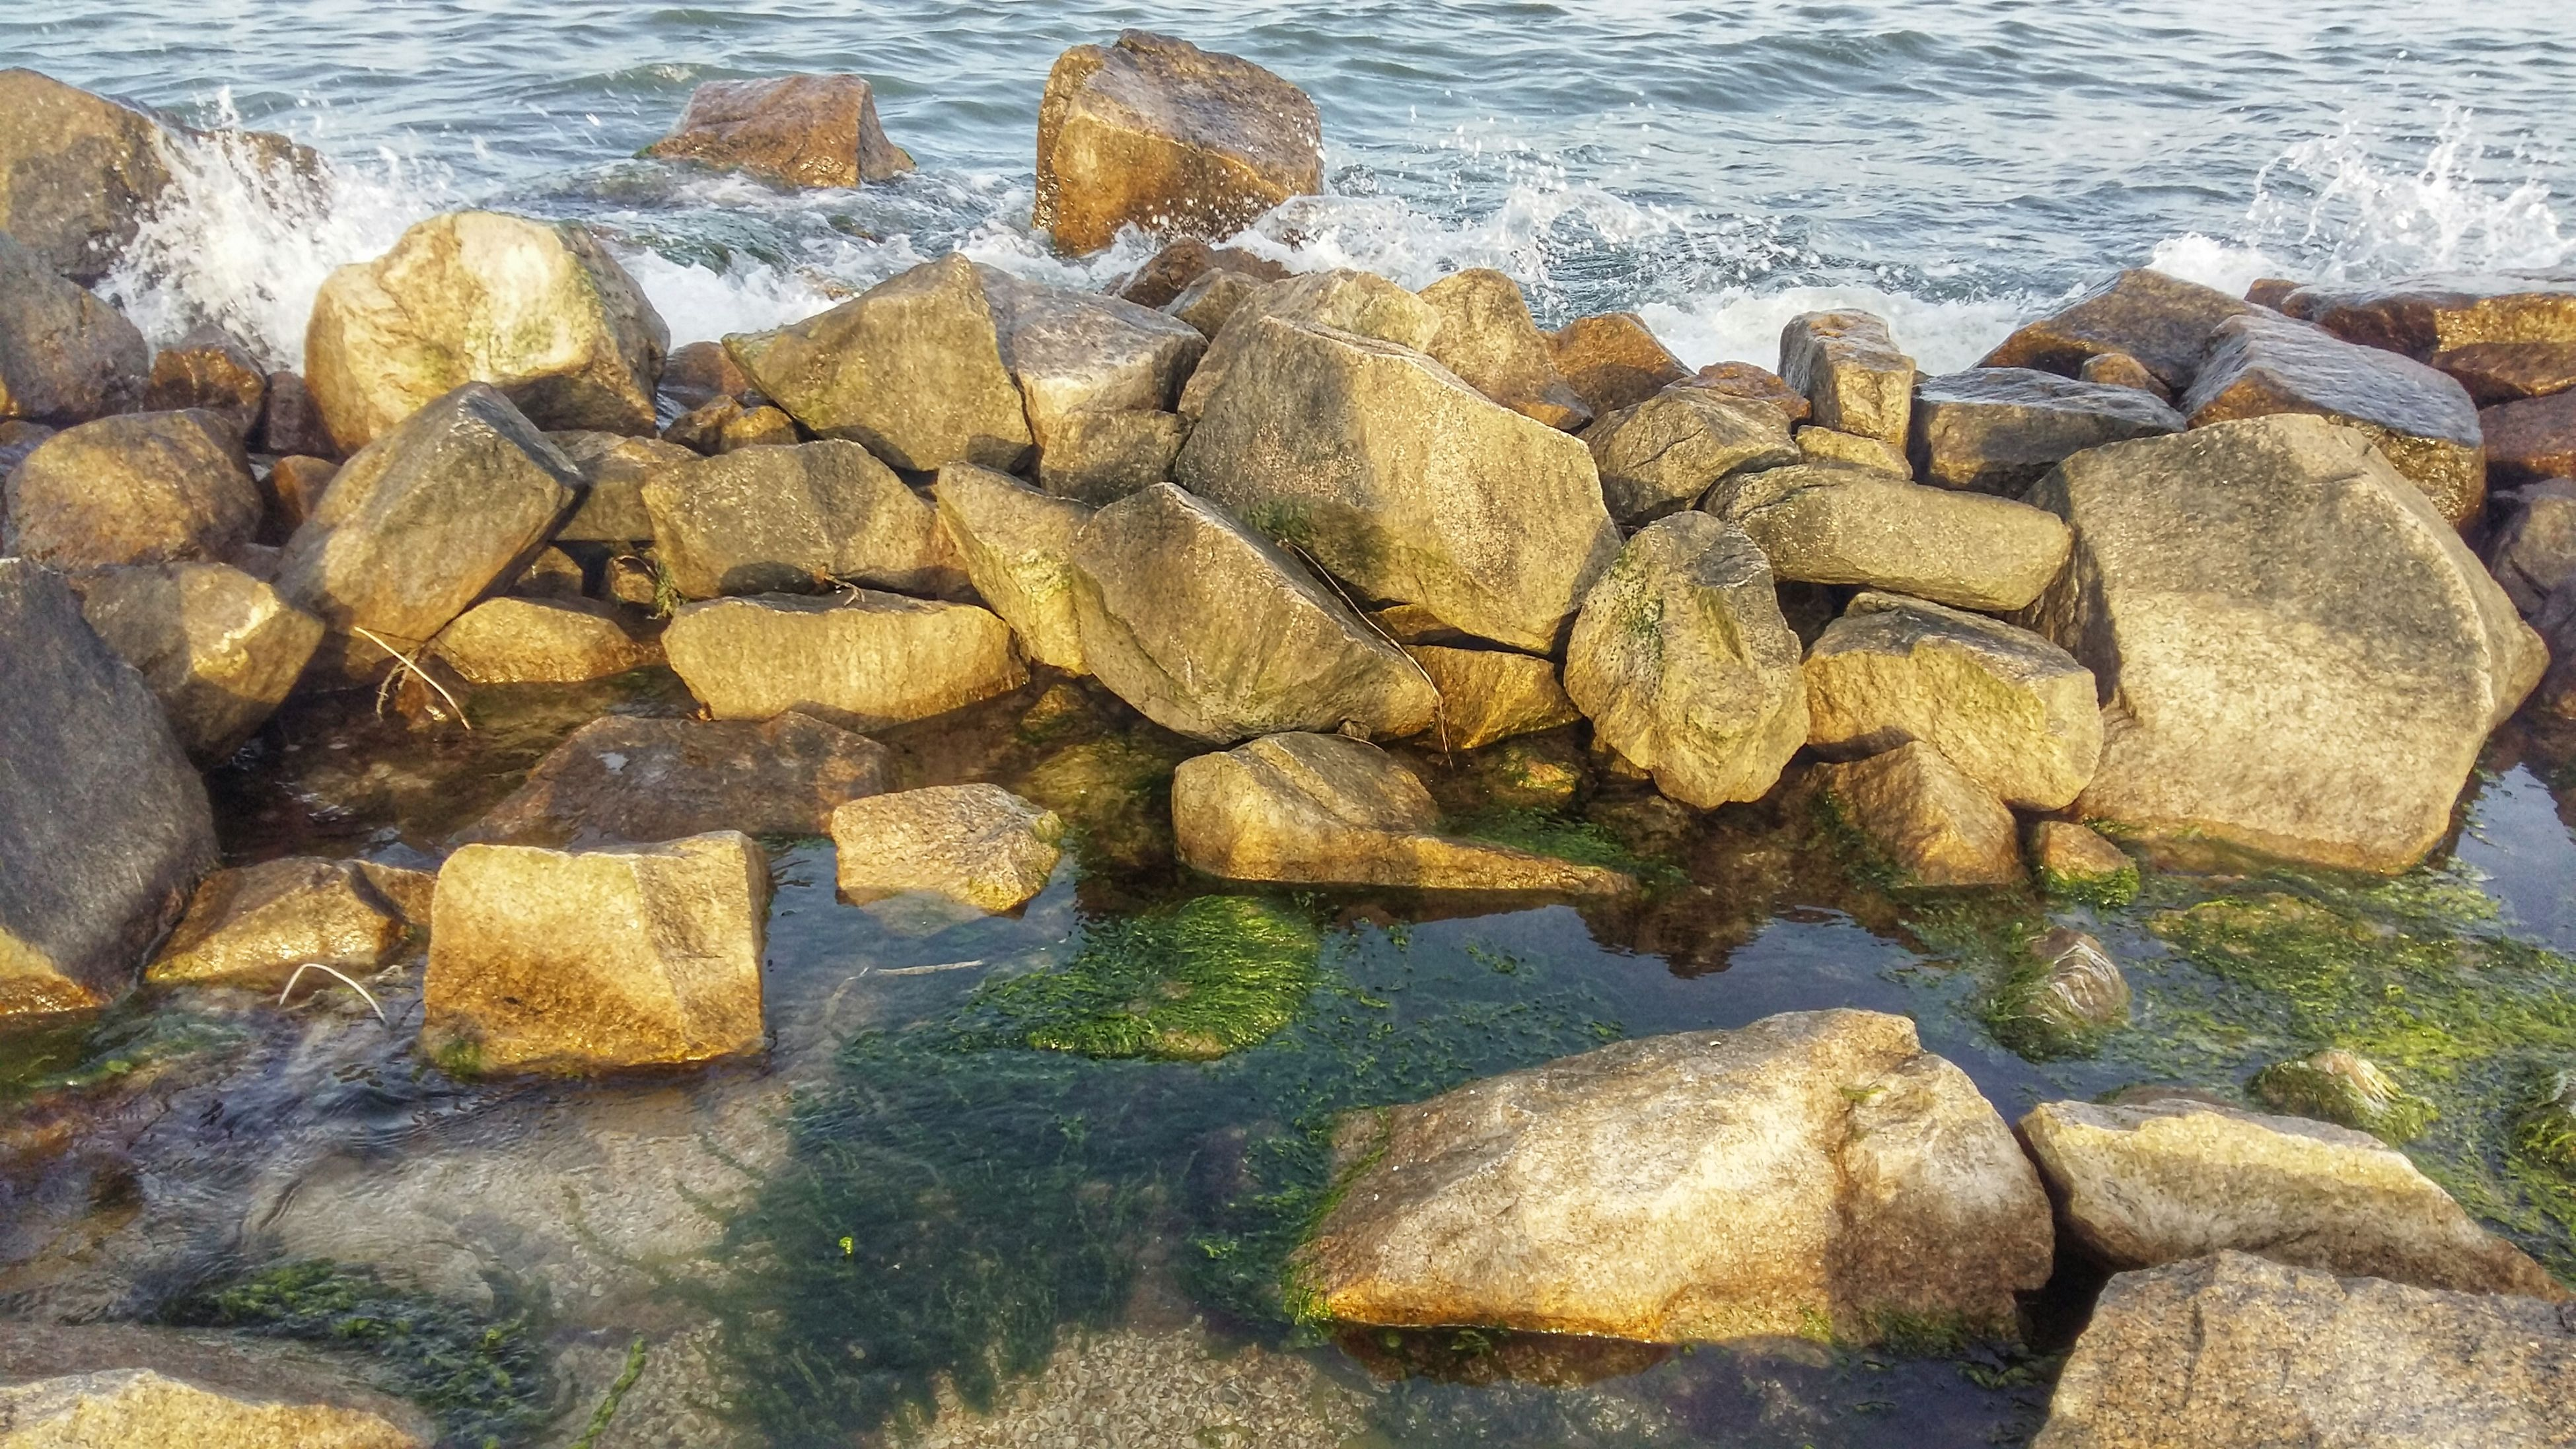 water, rock - object, sea, stone - object, rock, stone, stack, tranquility, nature, pebble, high angle view, shore, large group of objects, beach, rock formation, day, outdoors, tranquil scene, abundance, no people